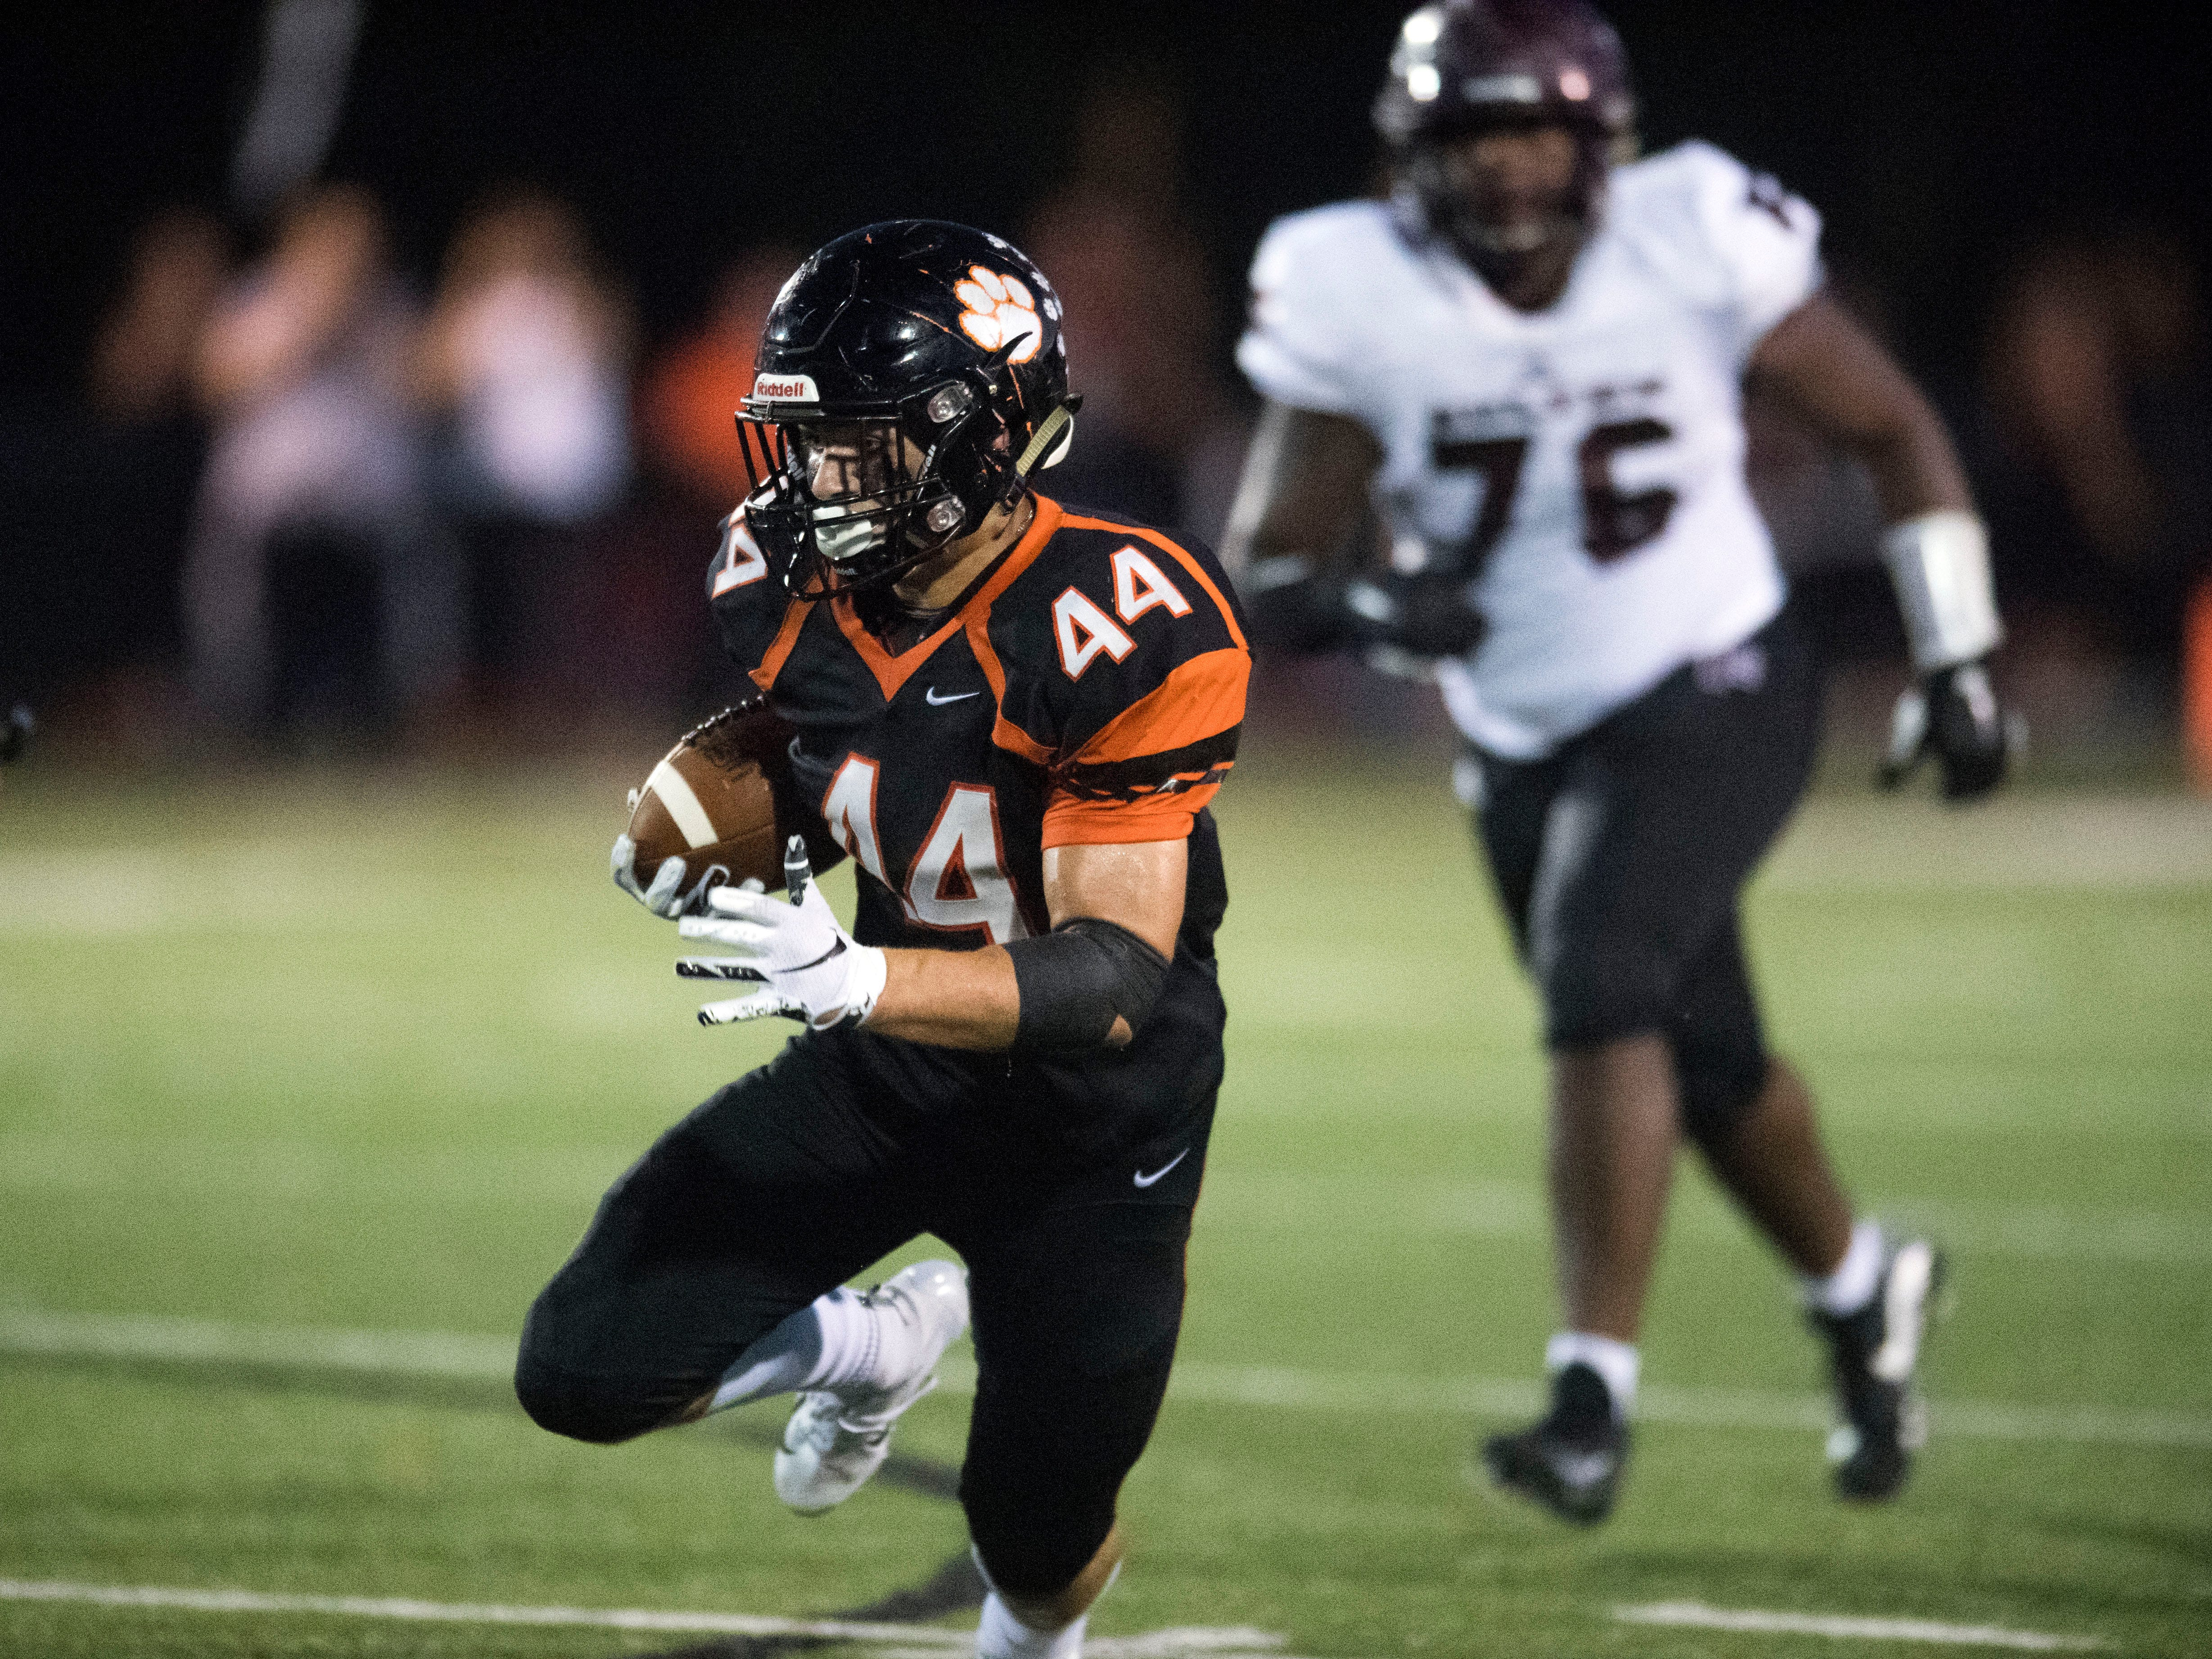 Powell's Eli Owens (44) runs for yards in the football game against Fulton on Friday, August 31, 2018.